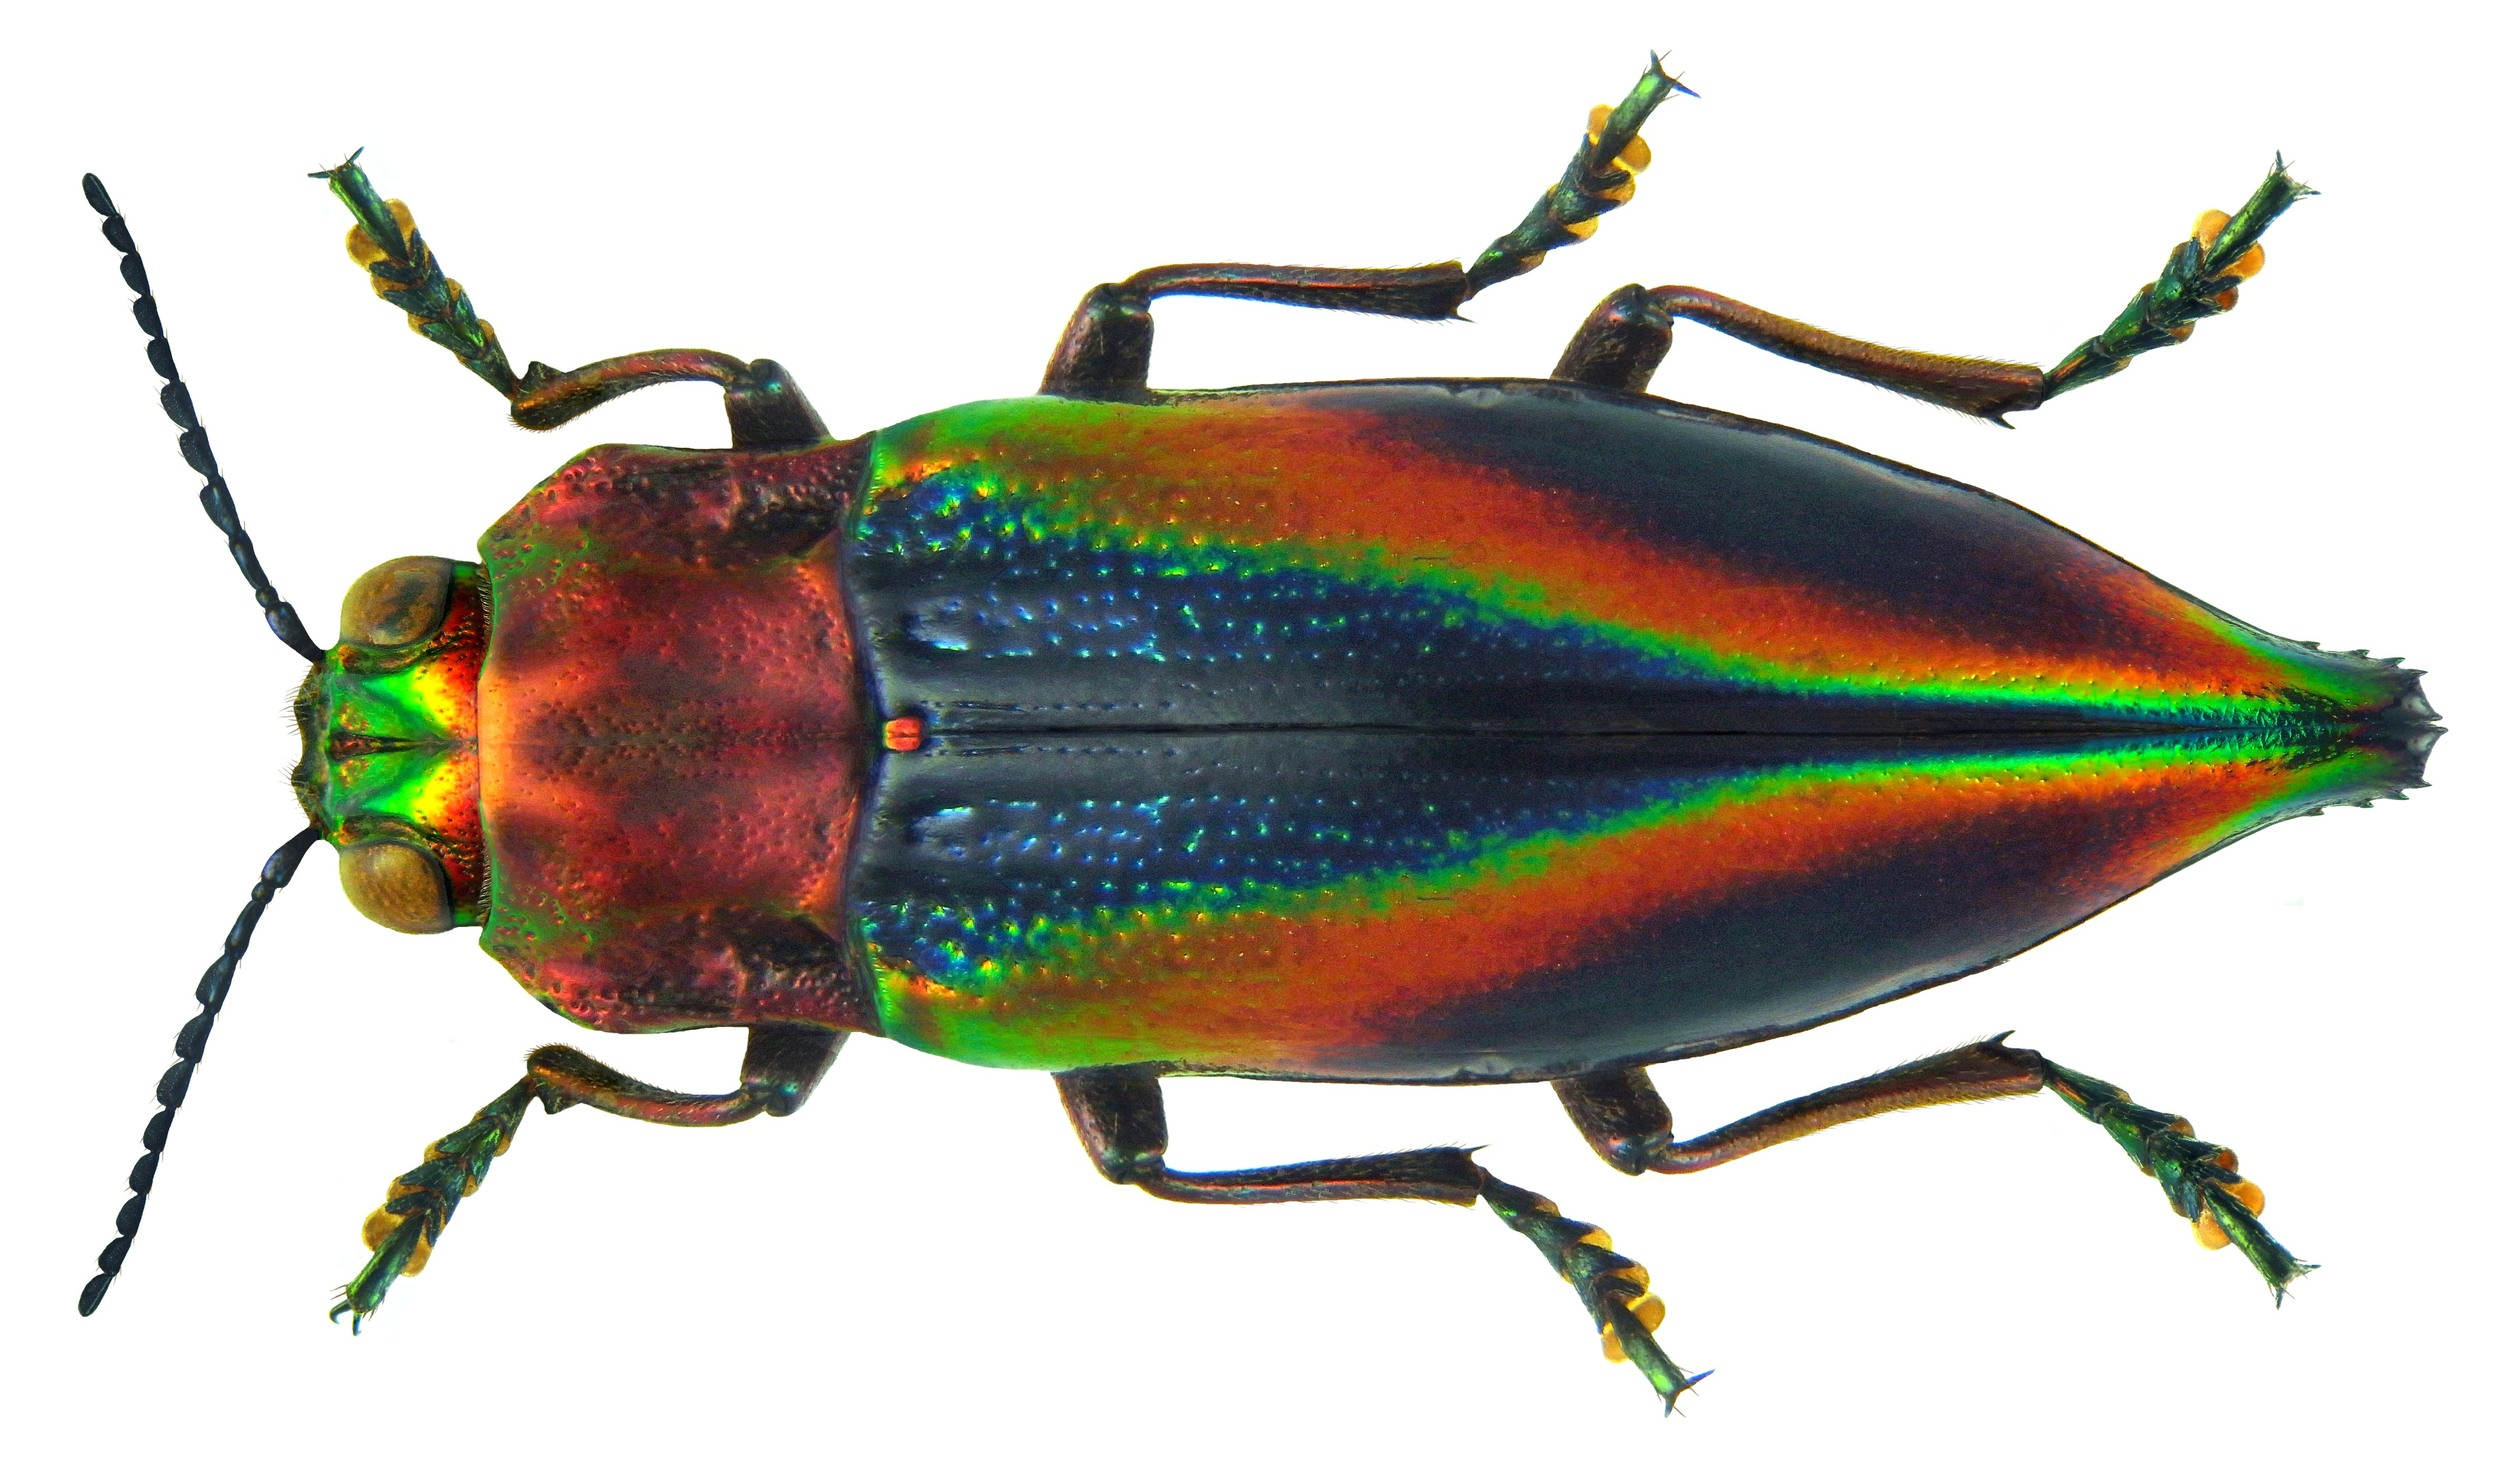 Cyphogastra javanica  |  Udo Schmidt/Wikimedia Commons  [ CC BY-SA 2.0 ]